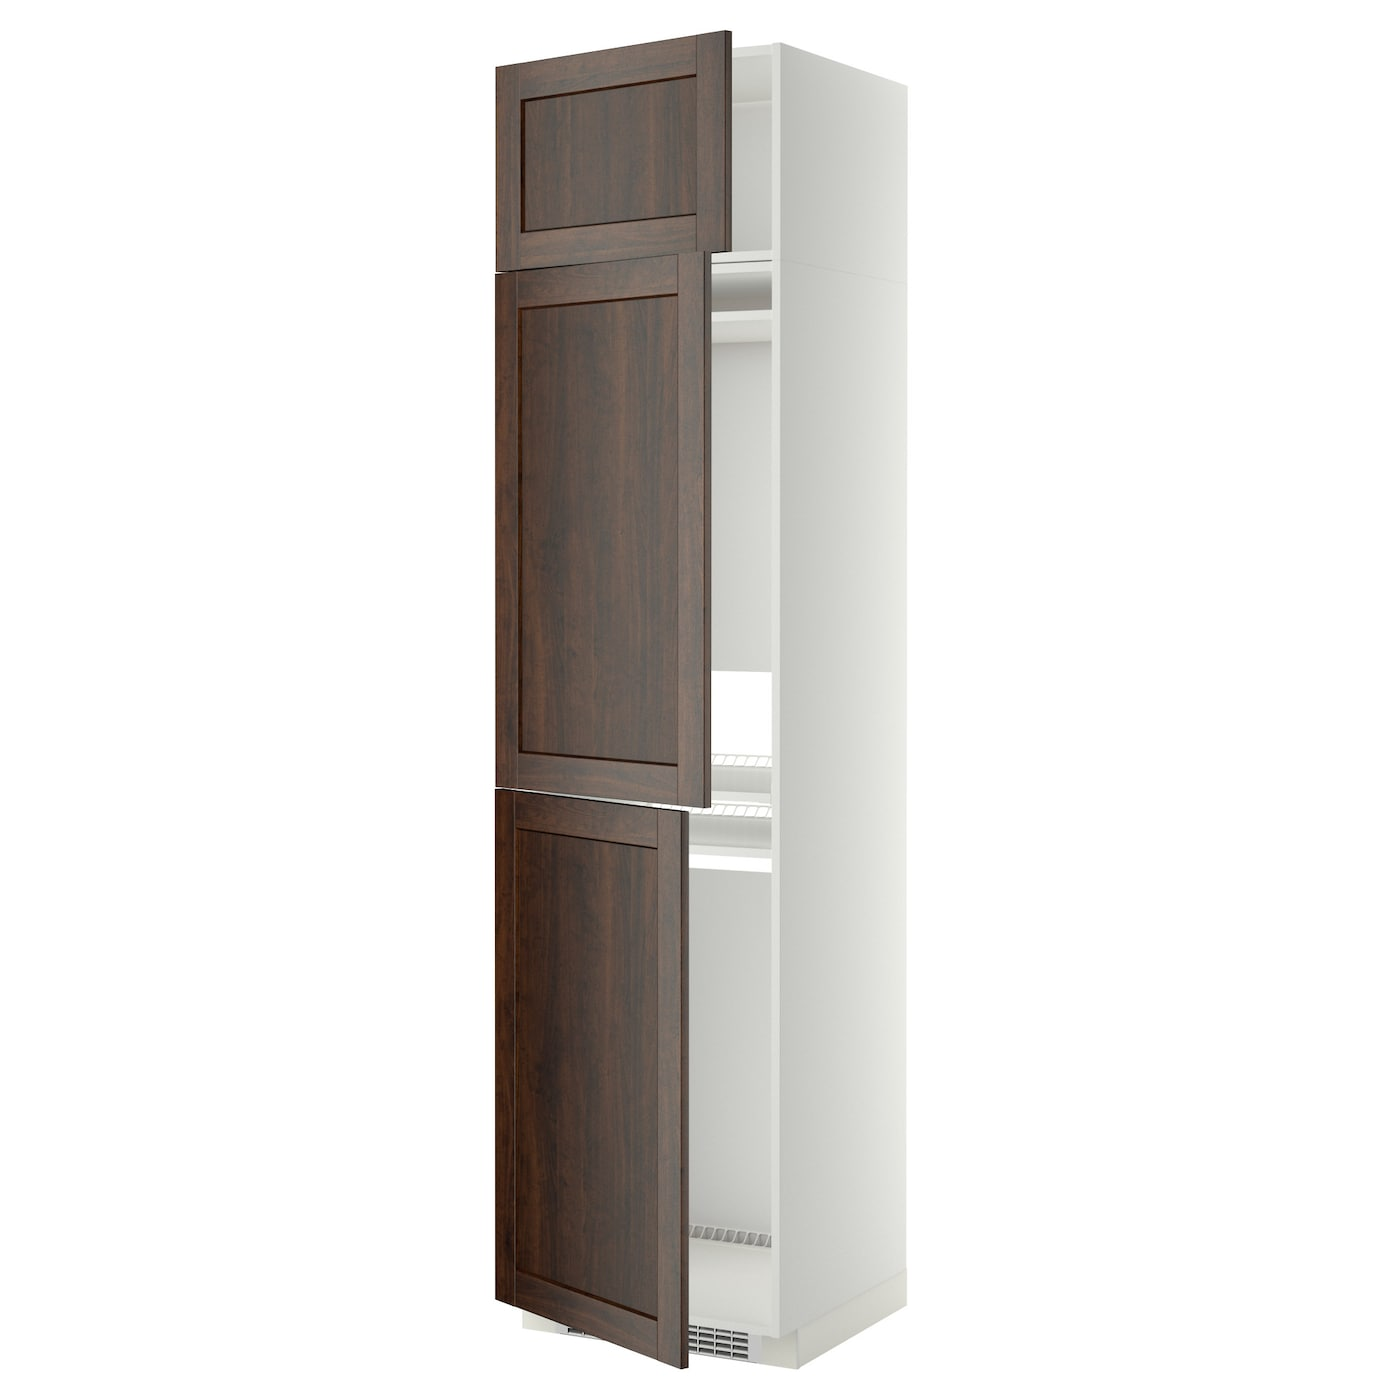 Metod high cab f fridge freezer w 3 doors white edserum brown 60x60x240 cm - Ikea kitchenette frigo ...